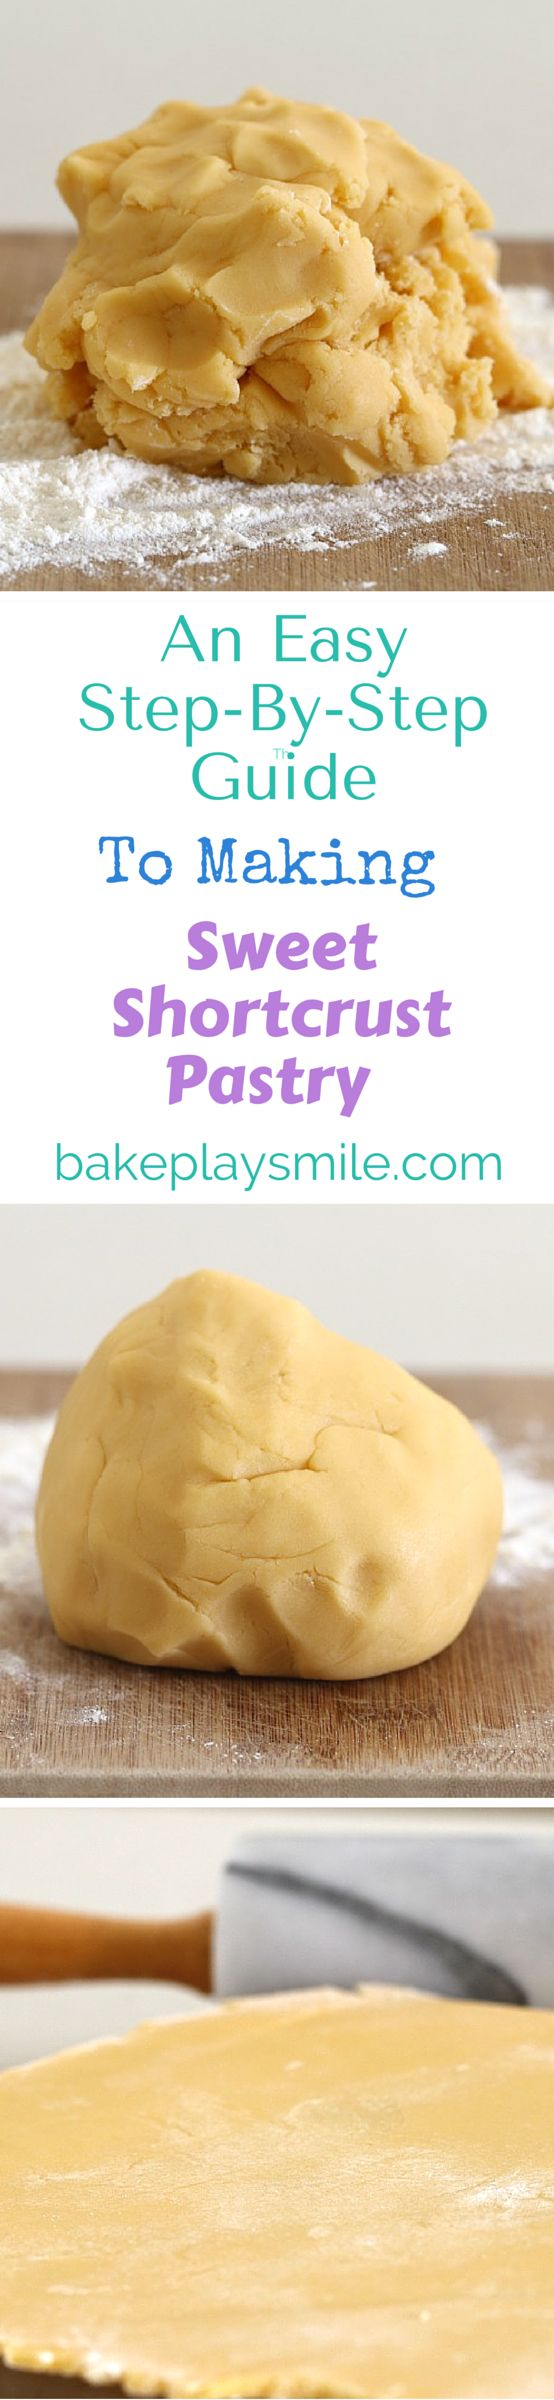 Sweet Shortcrust Pastry.